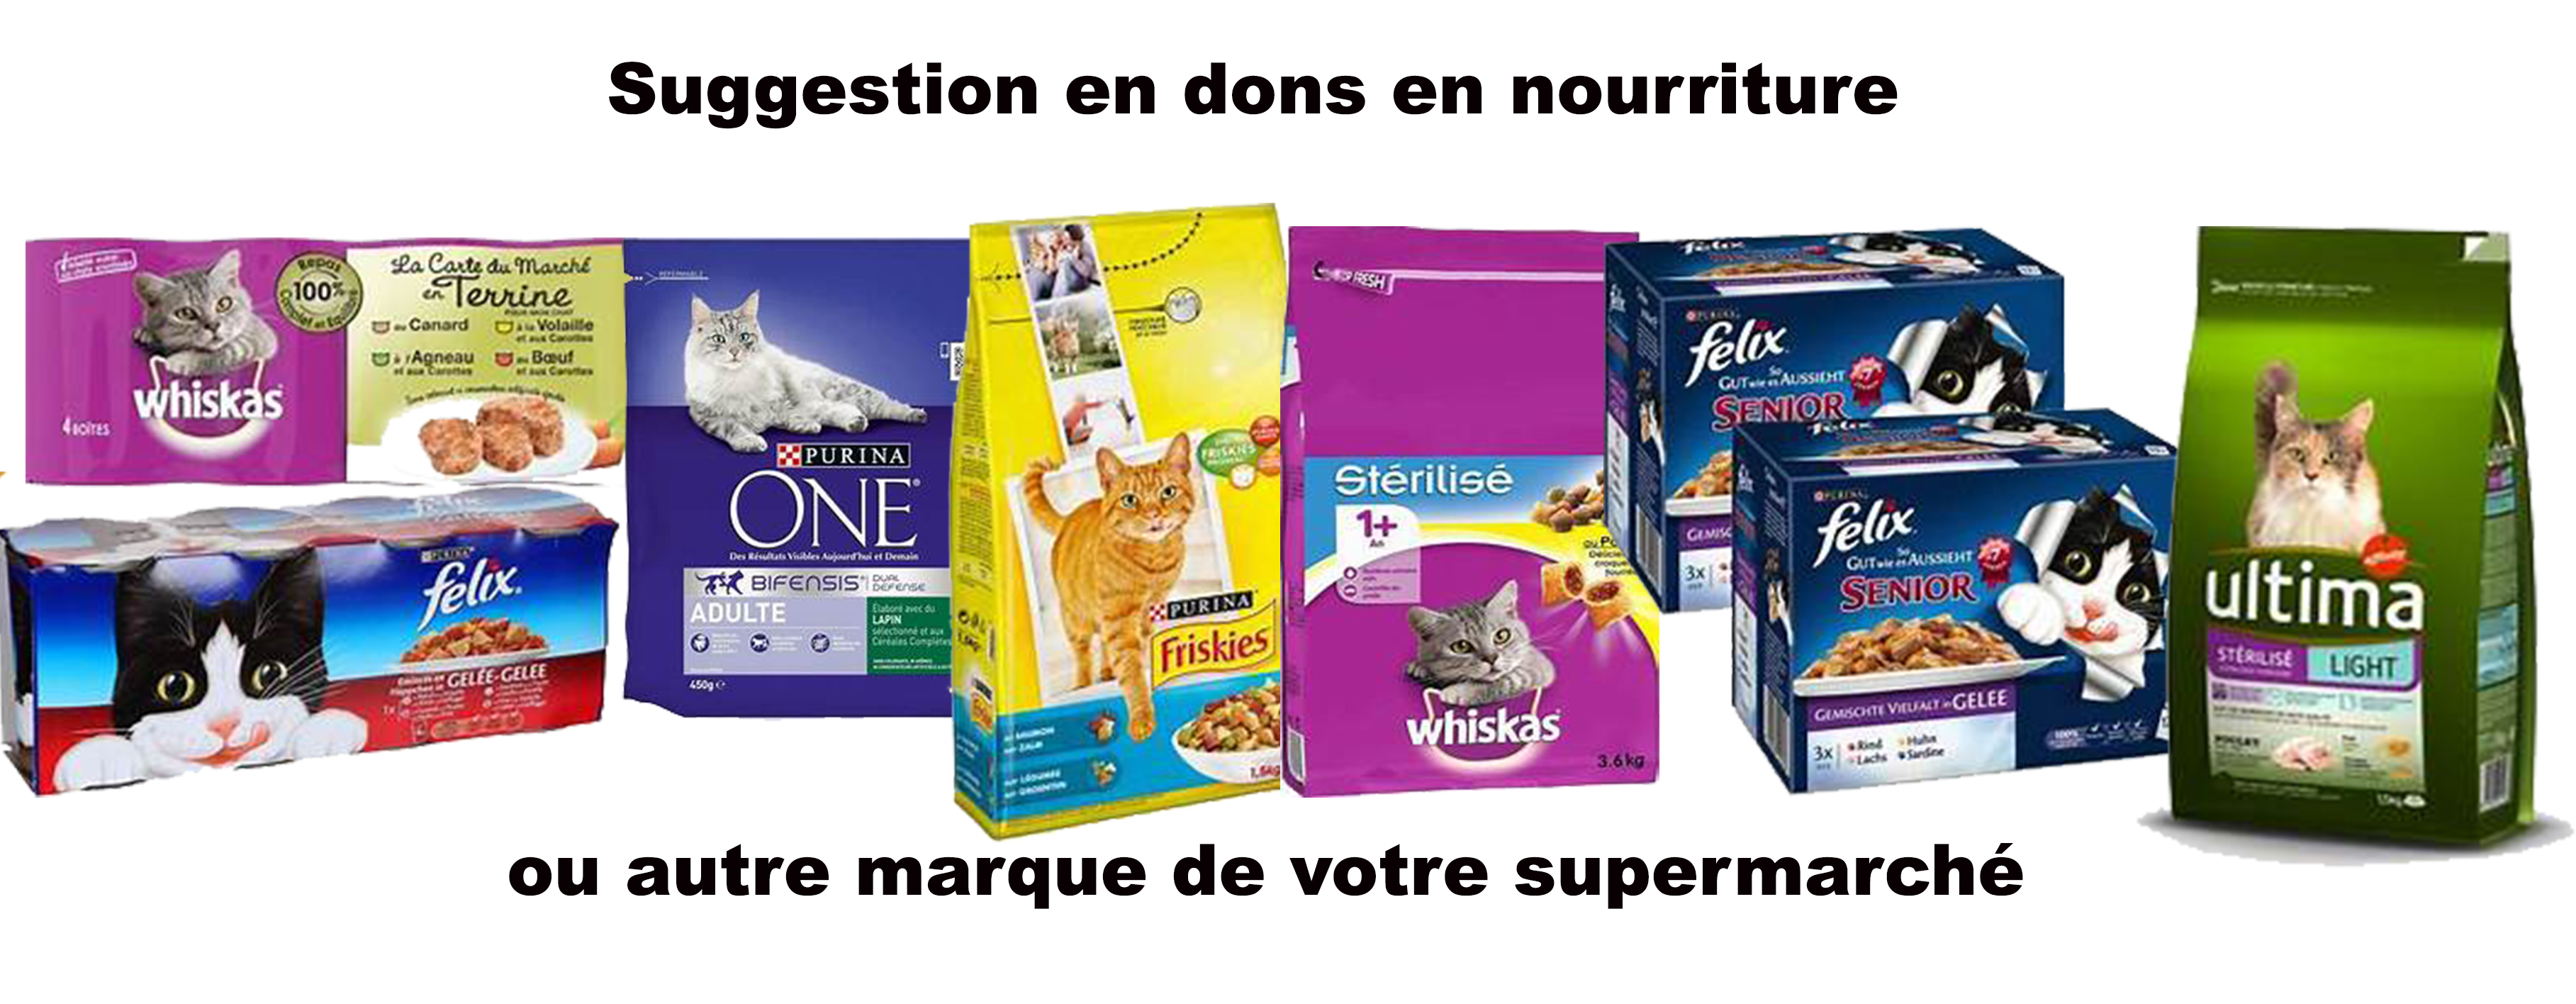 suggestion de don en nourriture